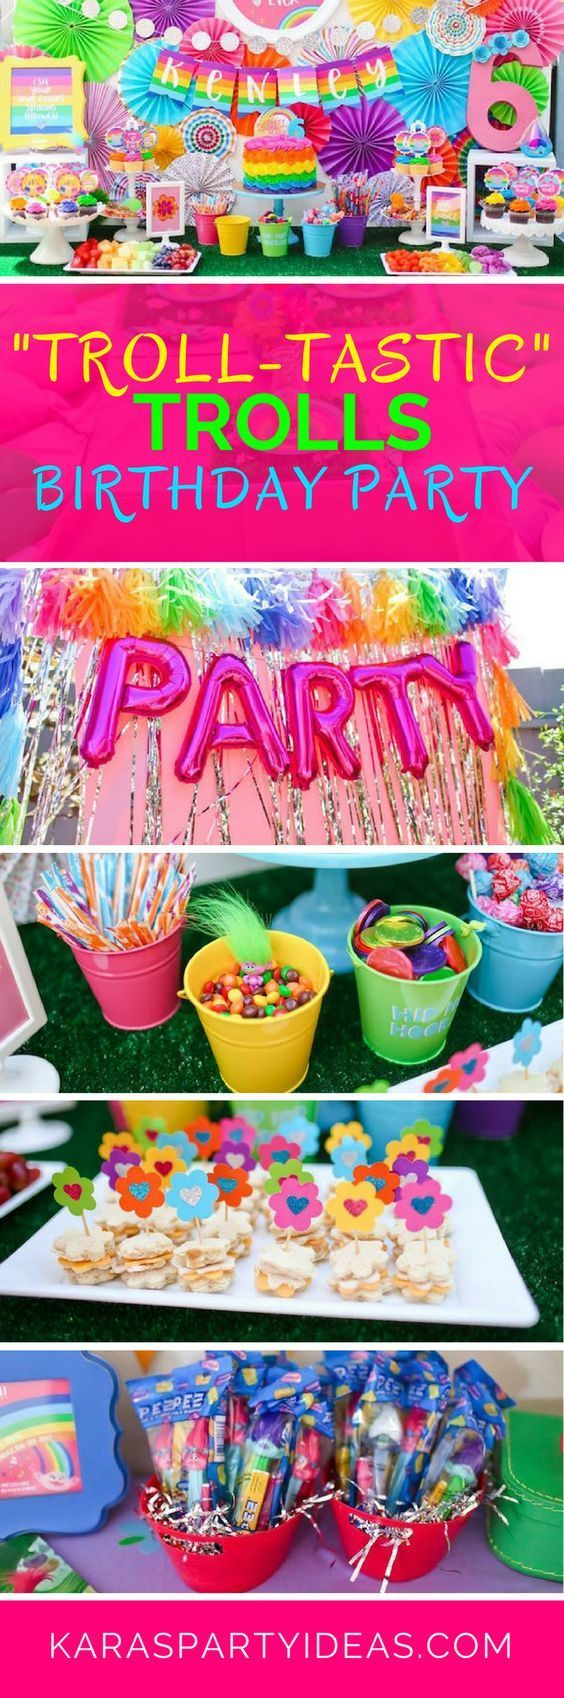 Troll-tastic Trolls Birthday Party via Kara's Party Ideas - KarasPartyIdeas.com